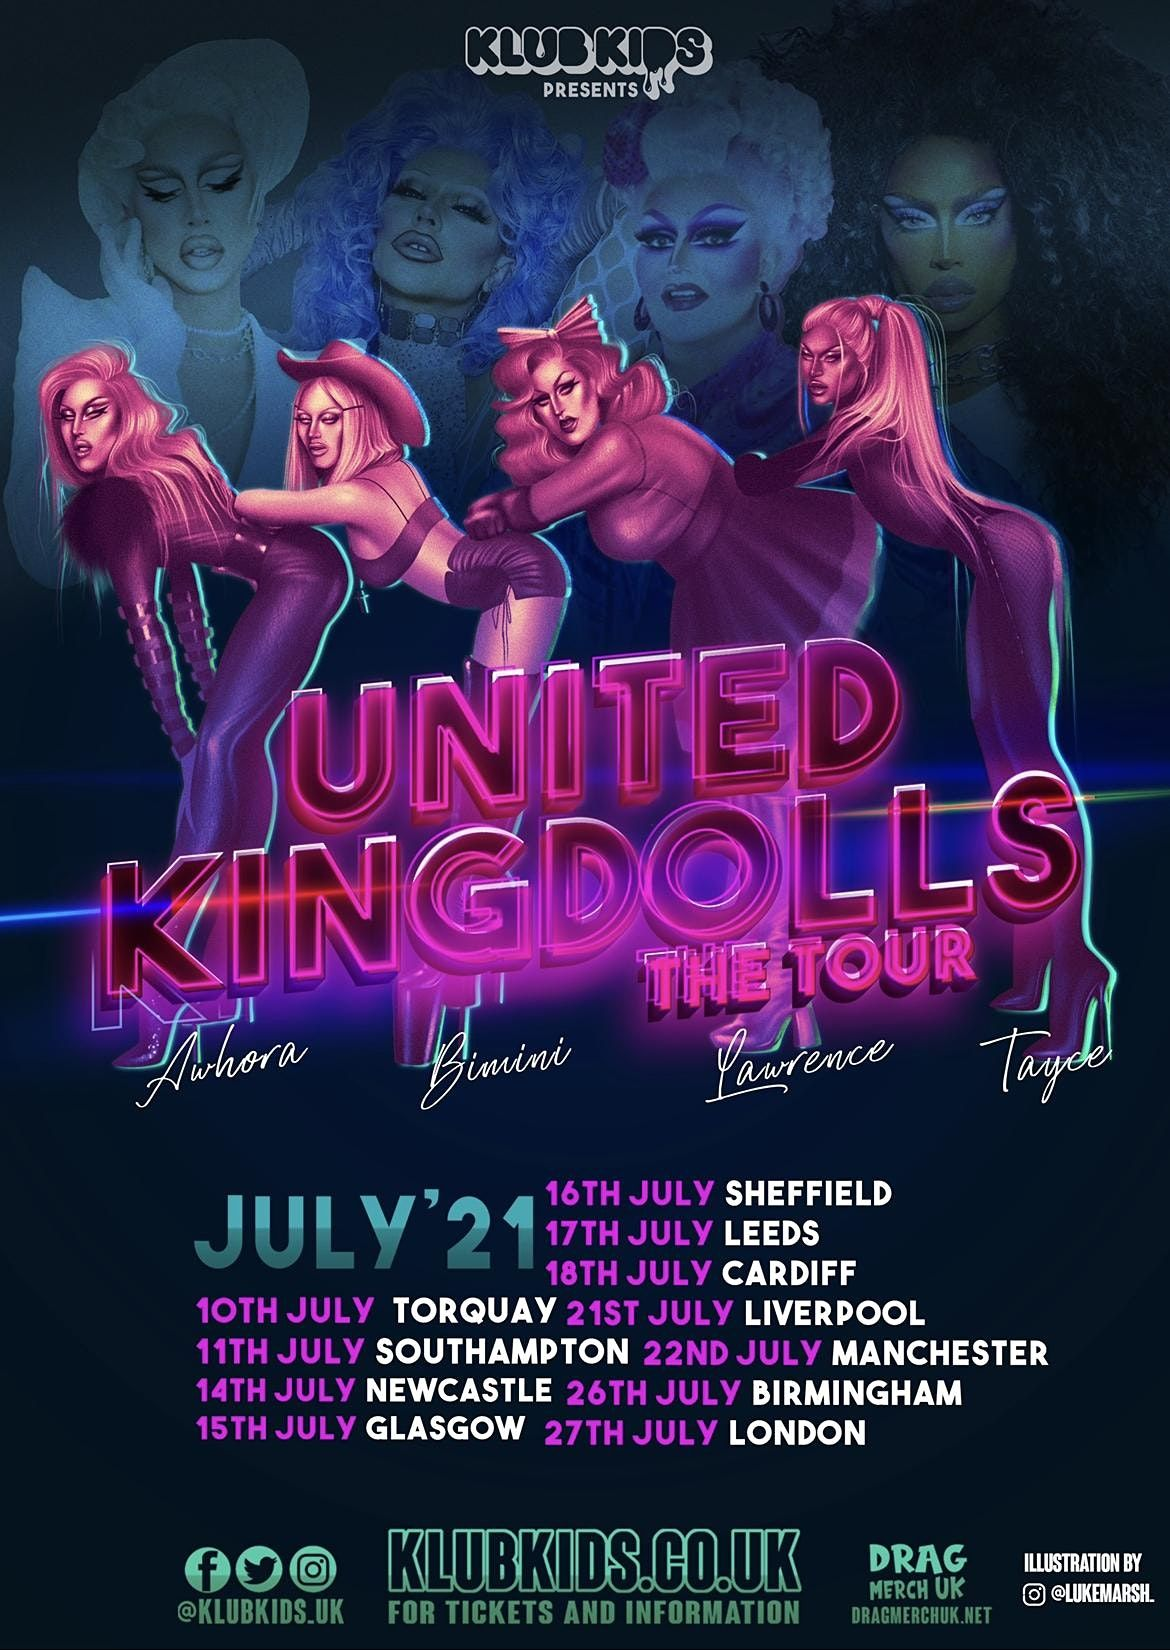 Klub Kids Cardiff Presents: THE UNITED KINGDOLLS The Tour  (Ages 14+), 18 July | Event in Cardiff | AllEvents.in